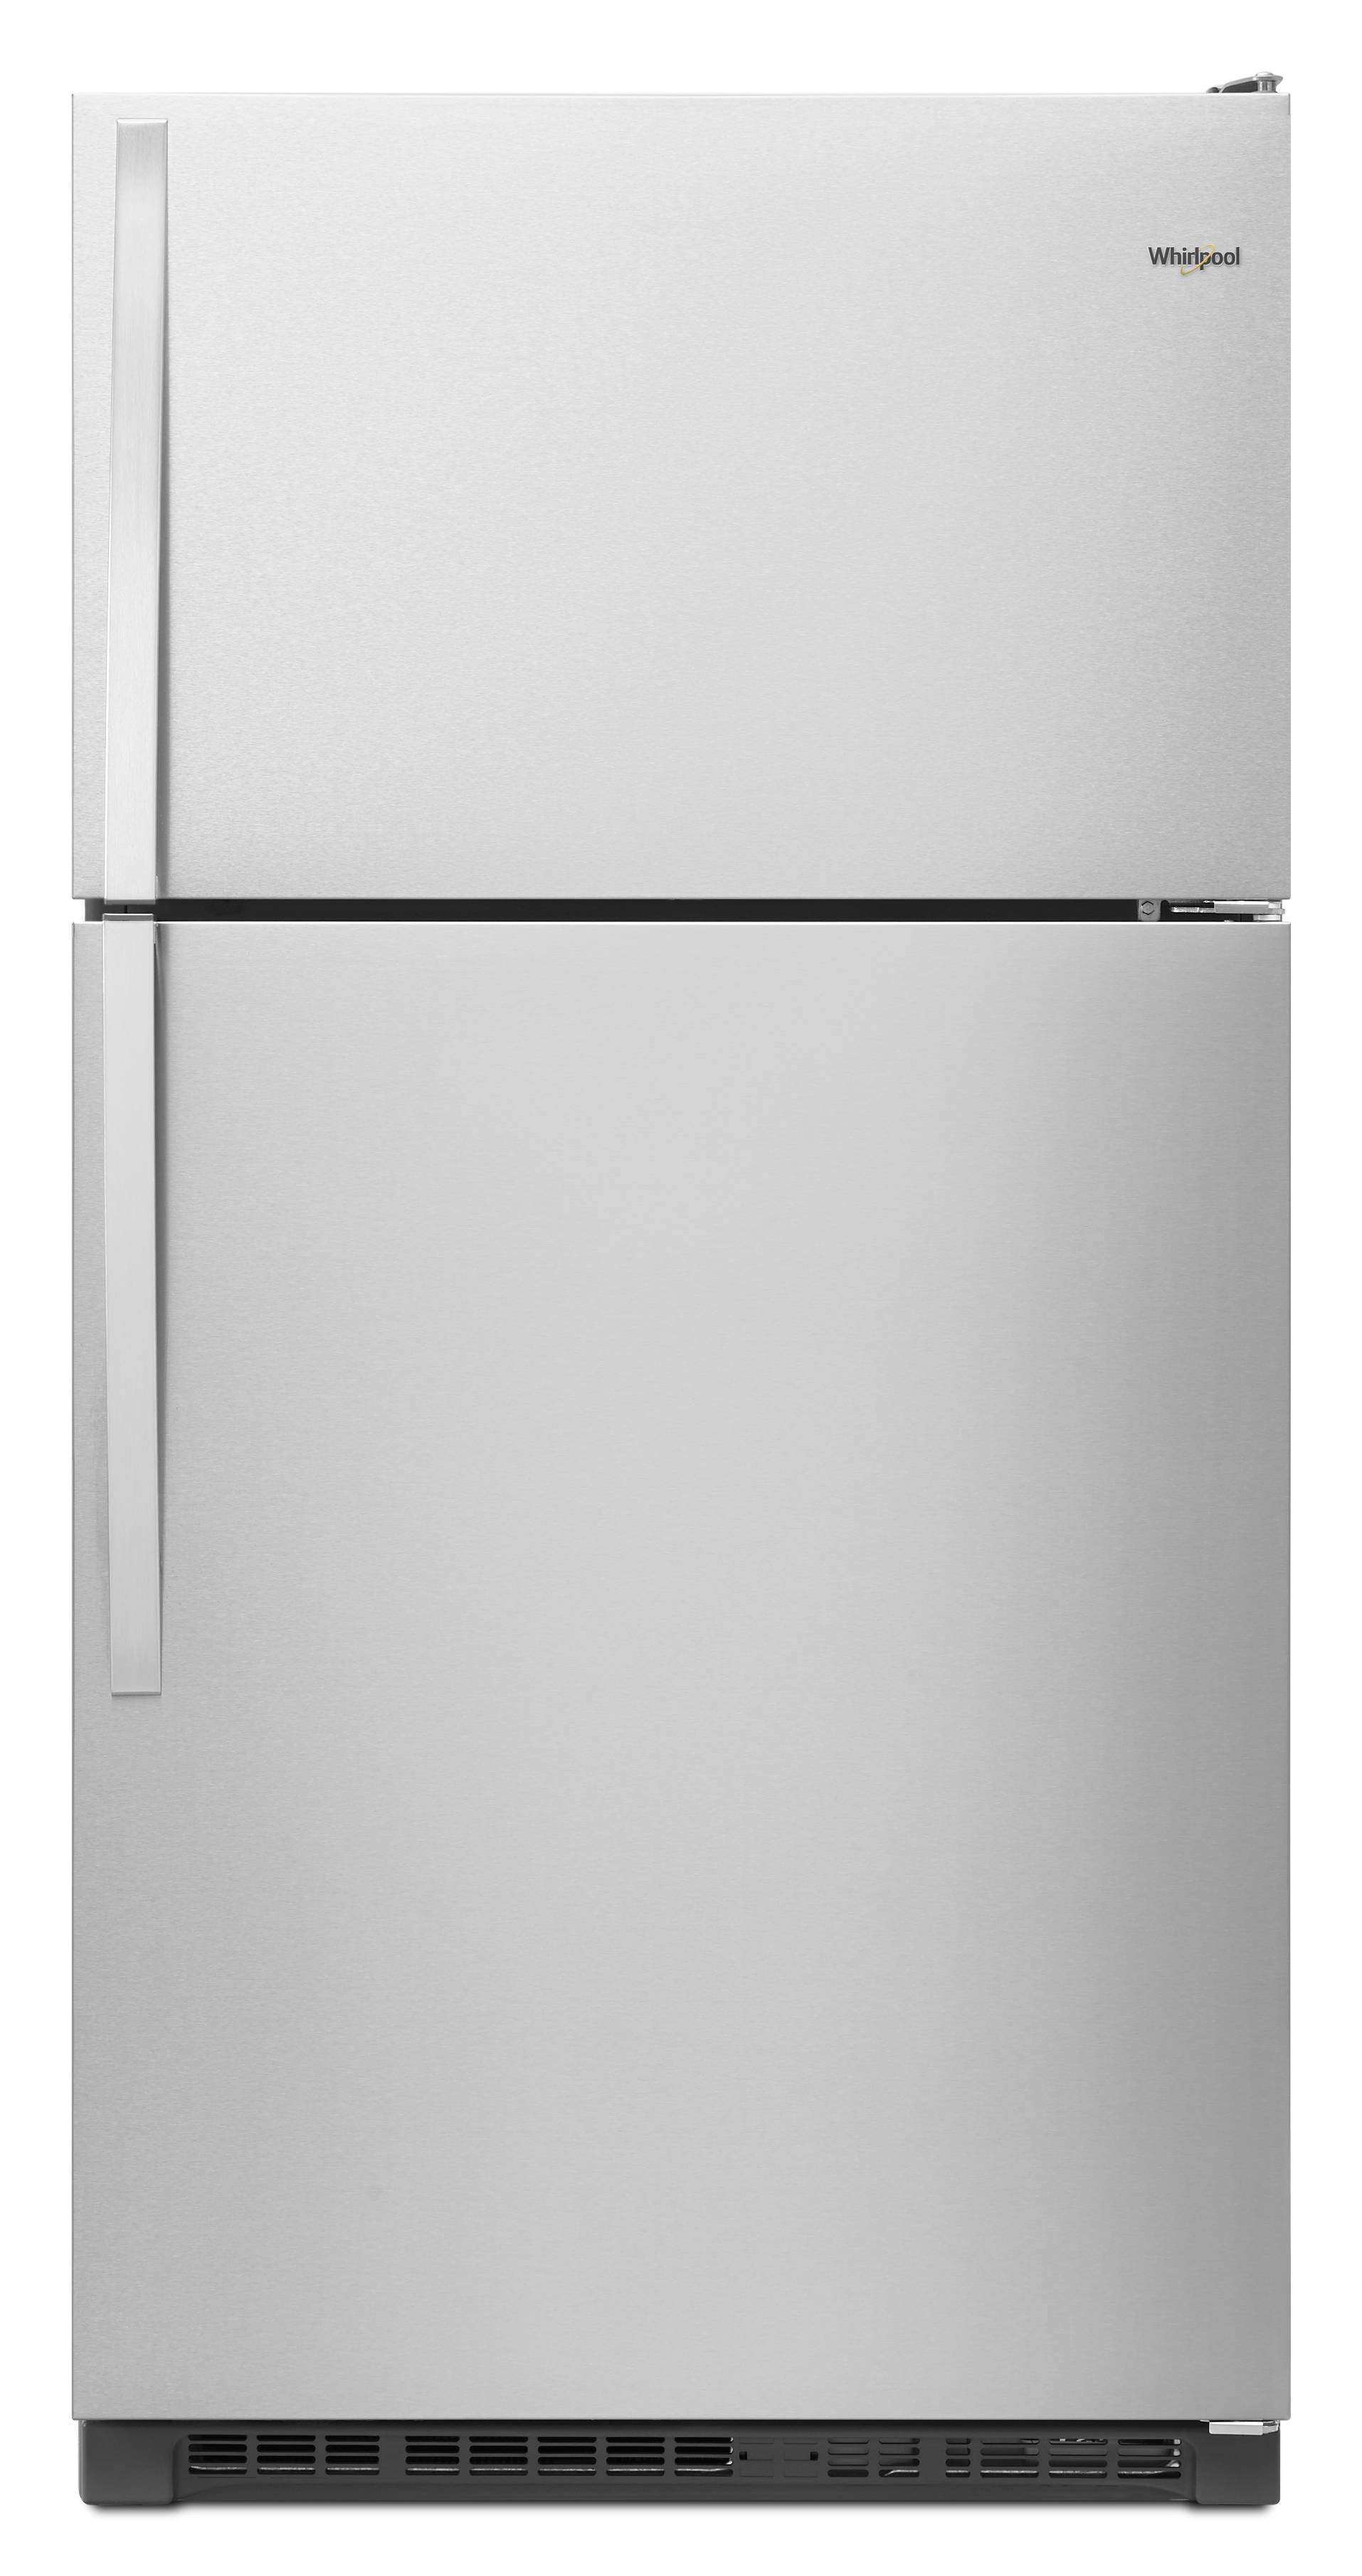 Whirlpool 20 5 Cu Ft Top Freezer Refrigerator Monochromatic Stainless Steel